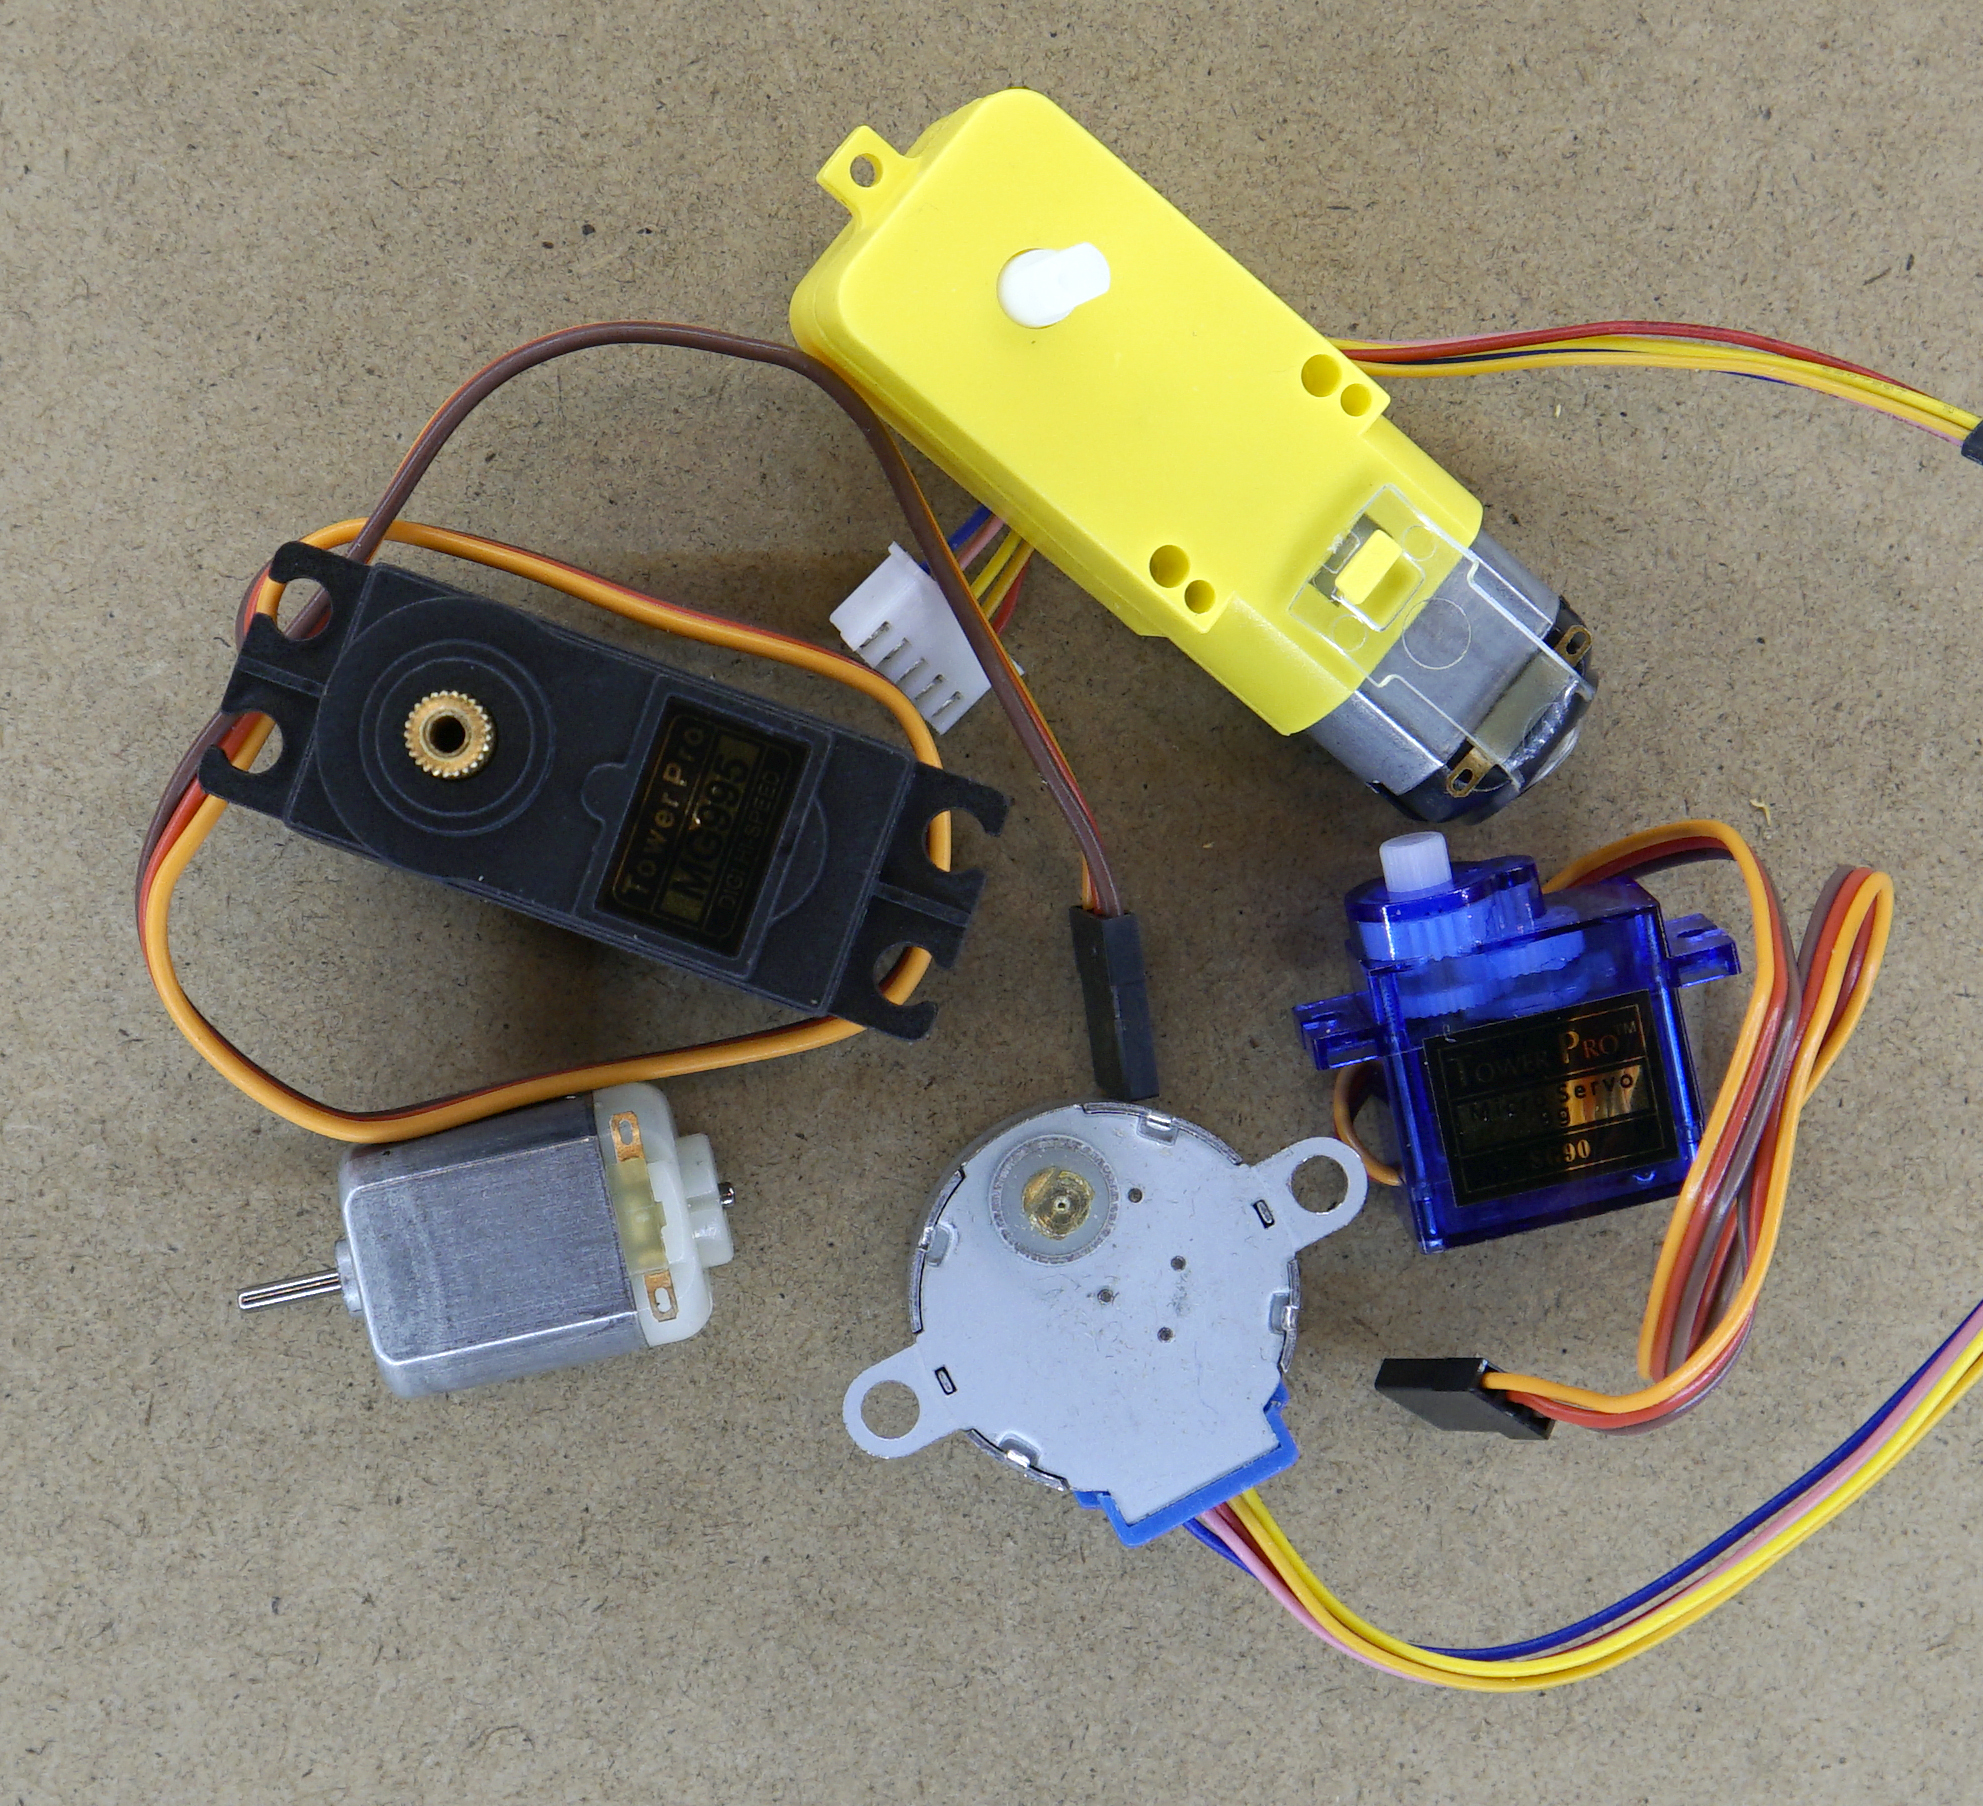 Motors and Servos